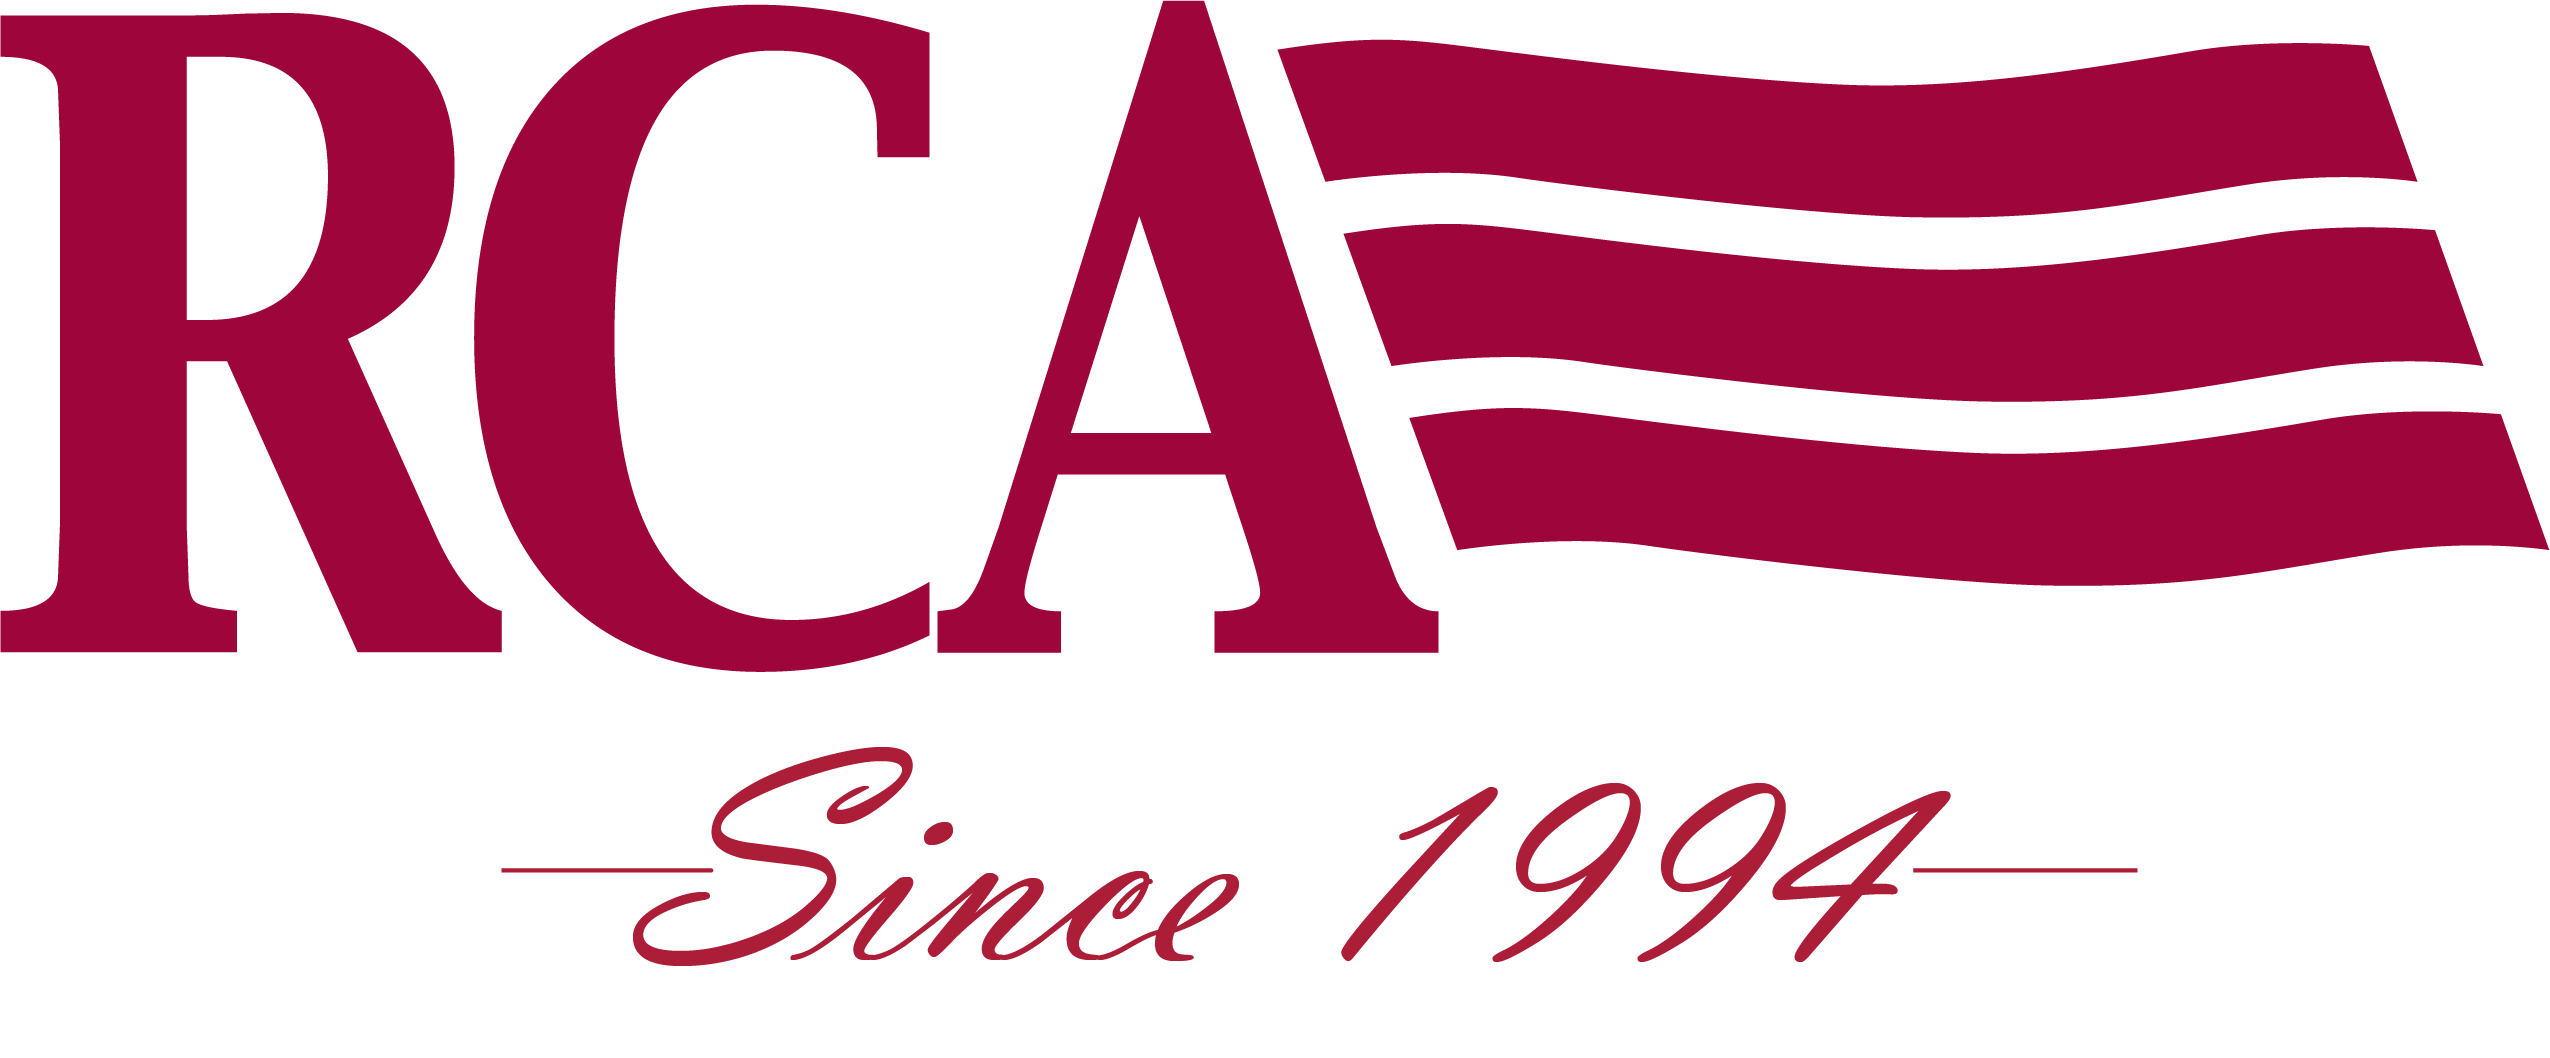 RCA 1994 logo -All Red